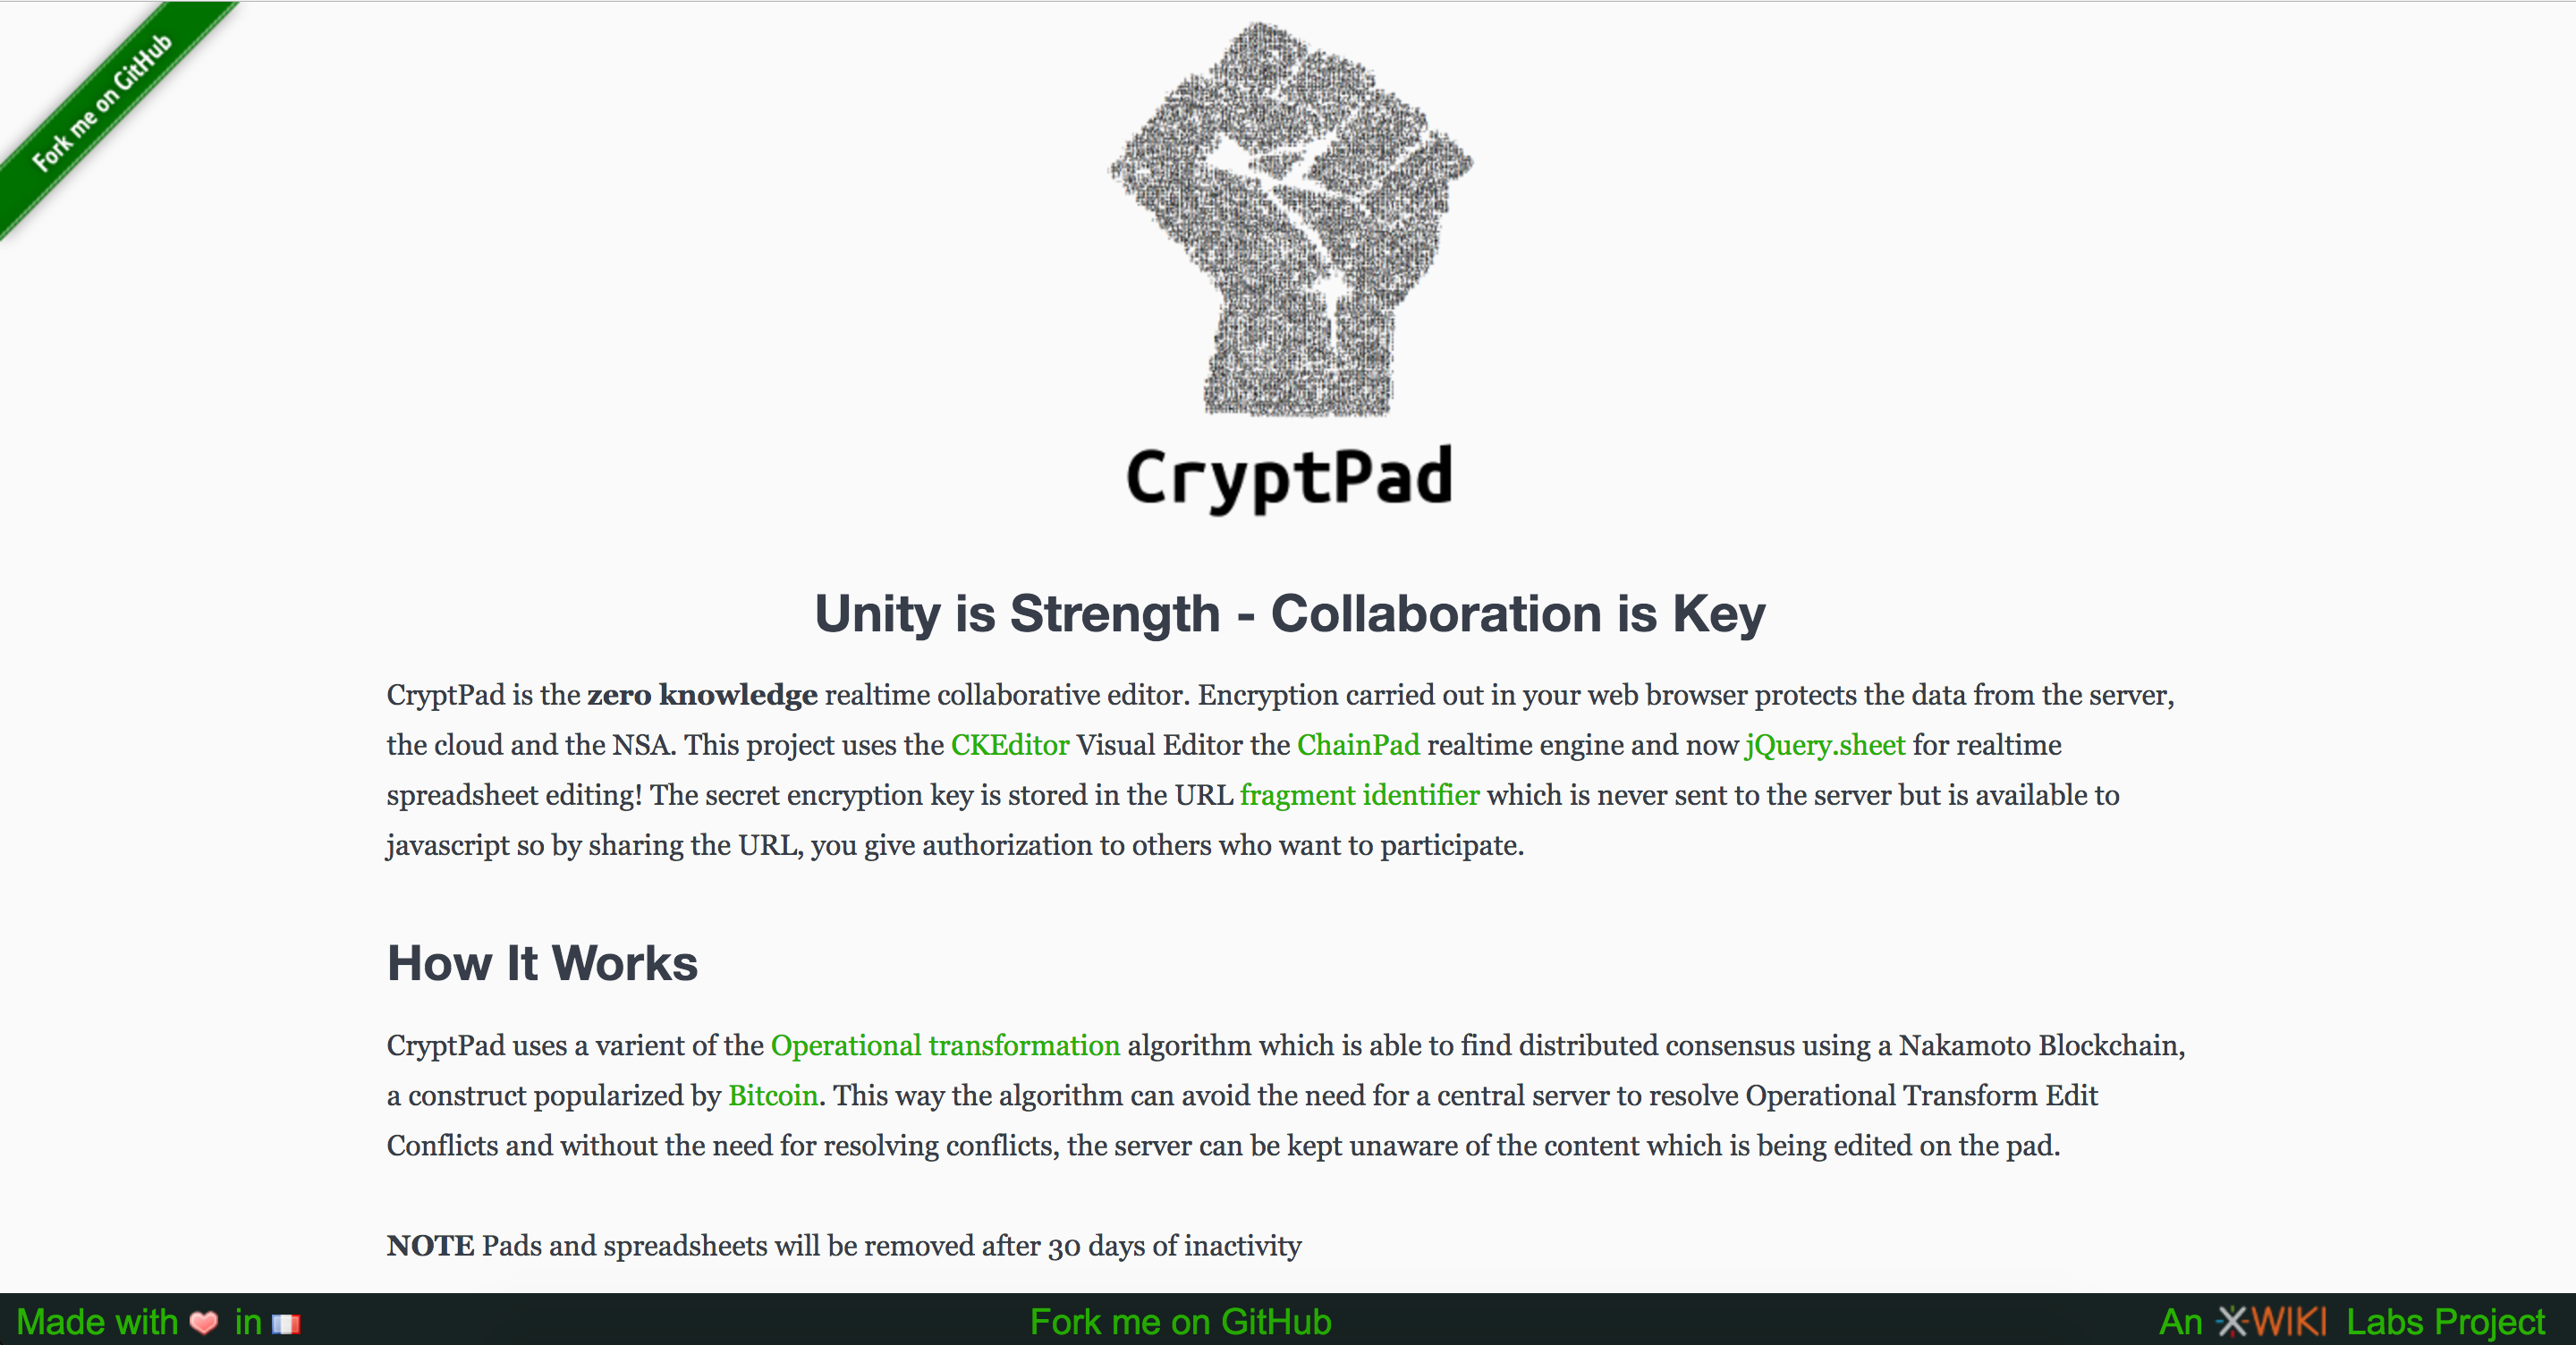 Old CryptPad Main Page